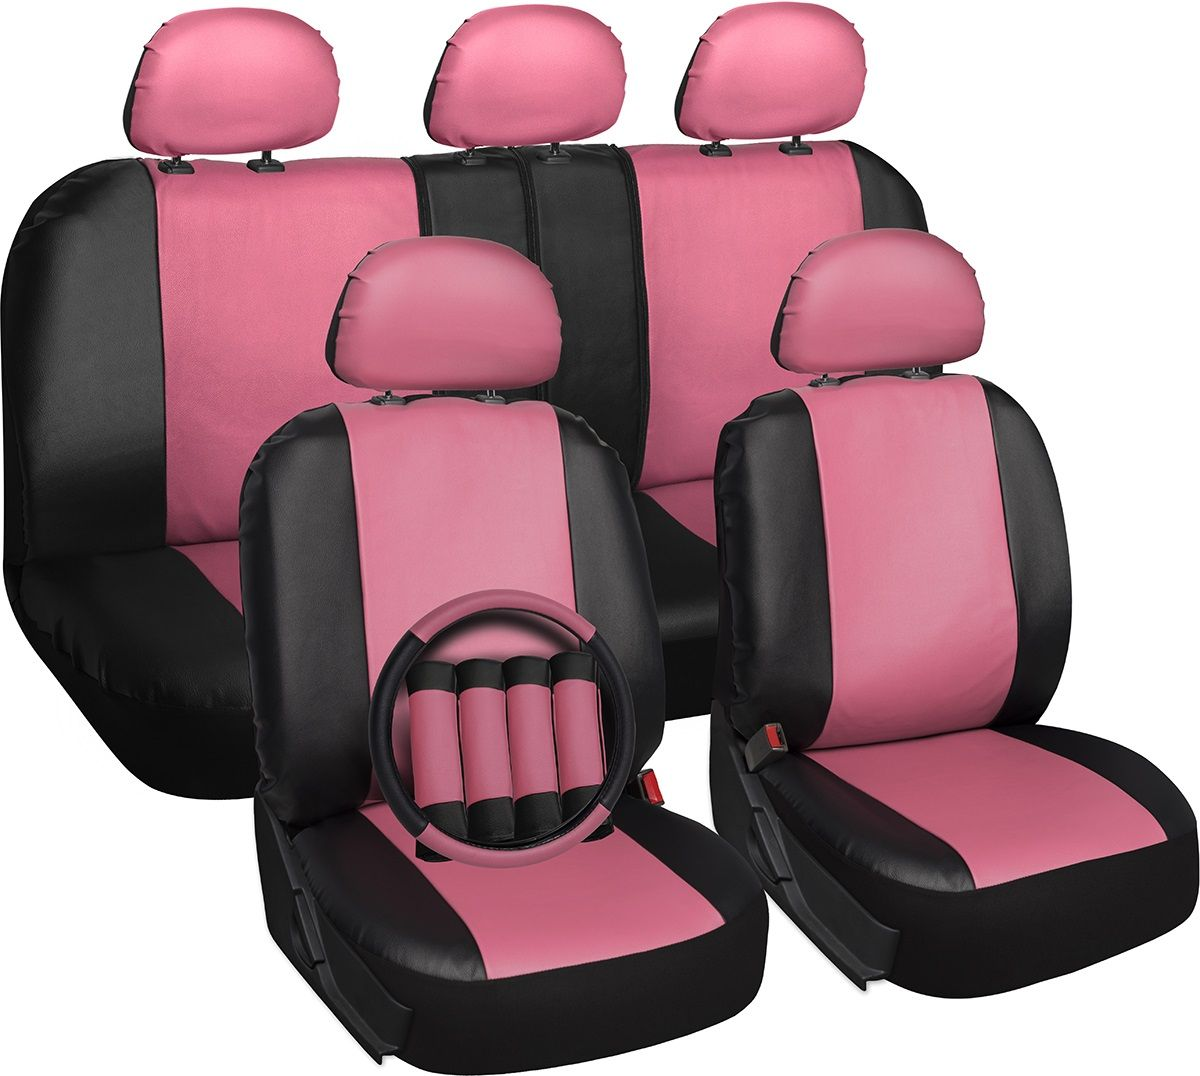 Superb Oxgord 17 Piece Seat Cover Set For Cars Faux Leather Pdpeps Interior Chair Design Pdpepsorg